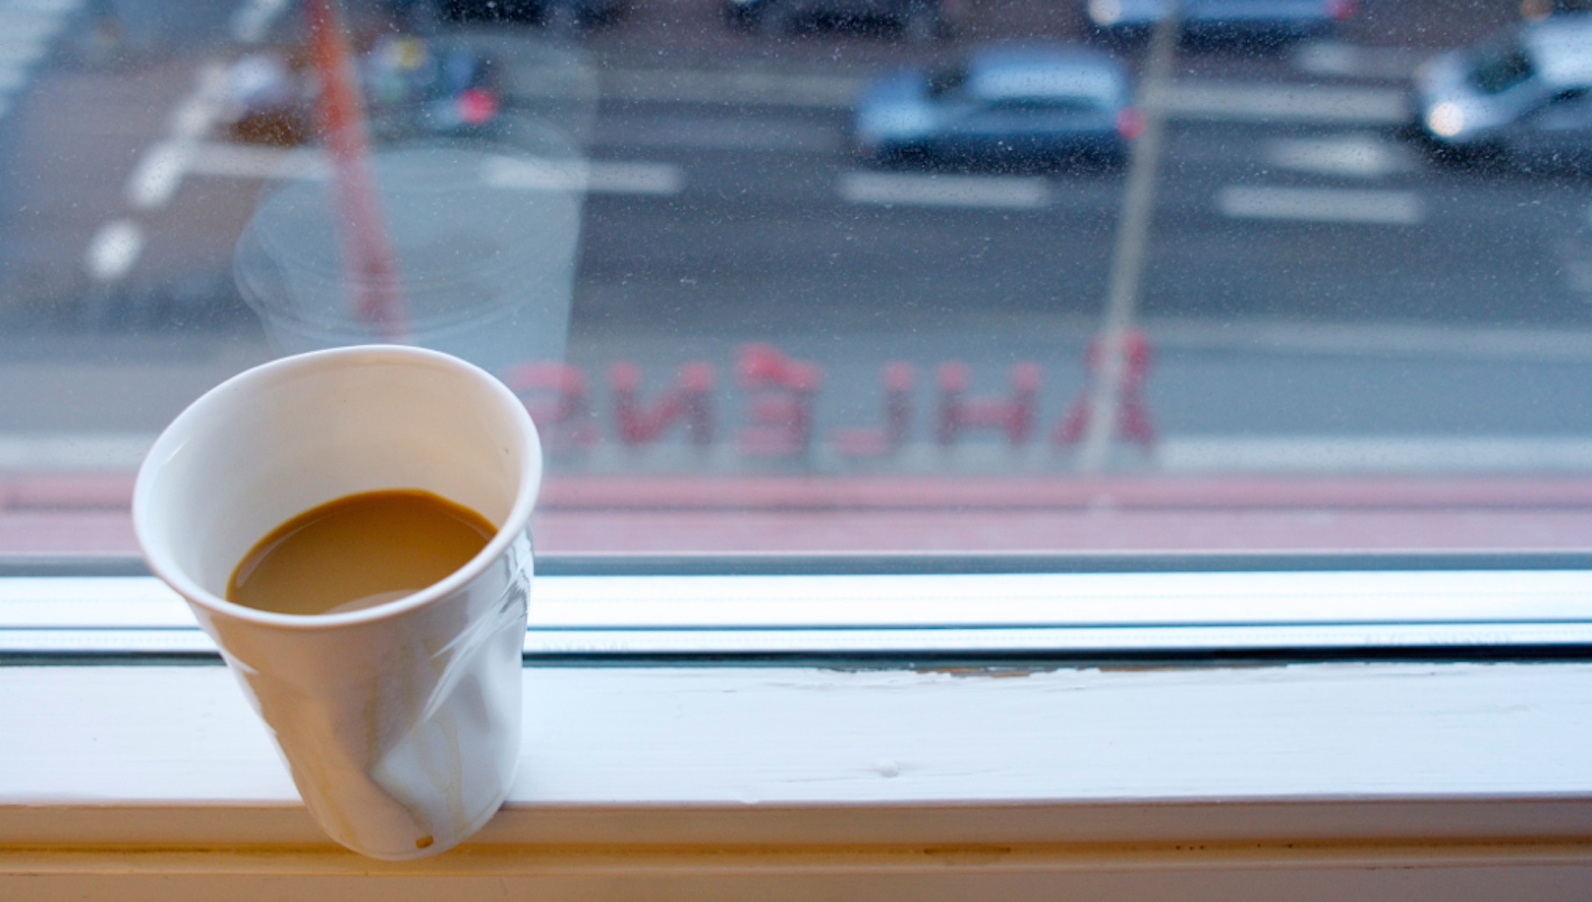 A ordinary Coffe with a view